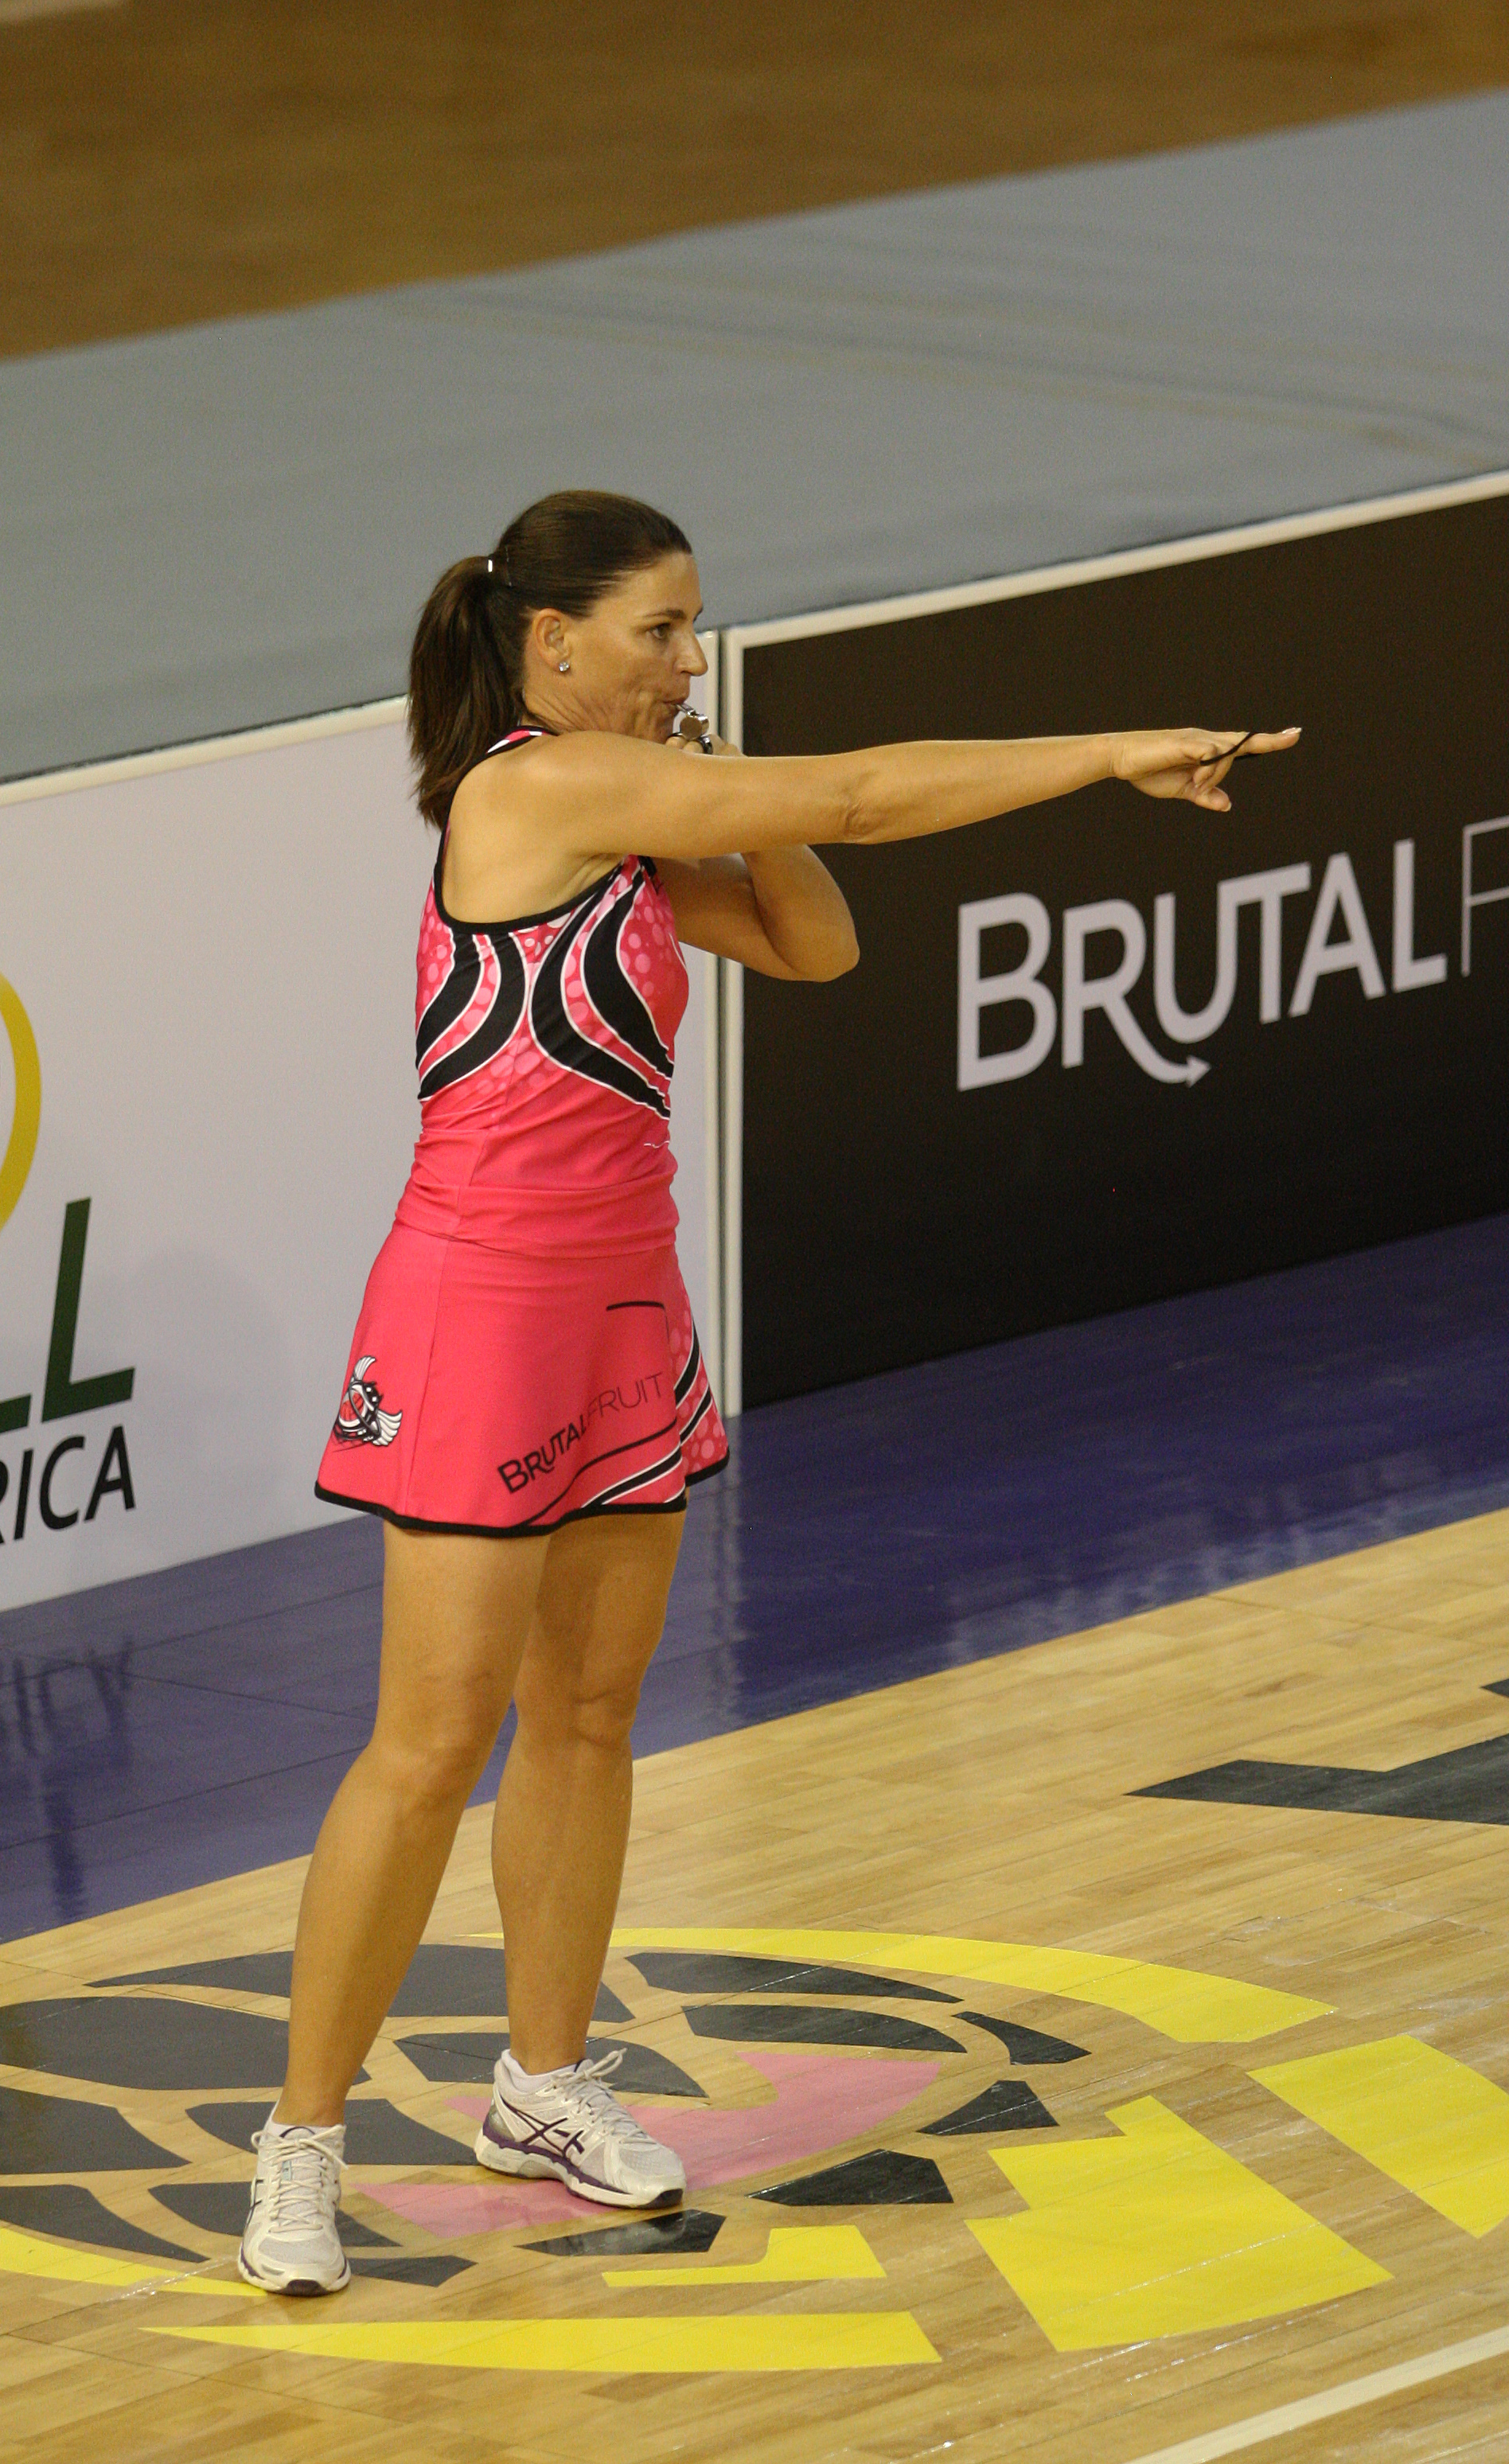 3# - Practice on Court - Netball Rules